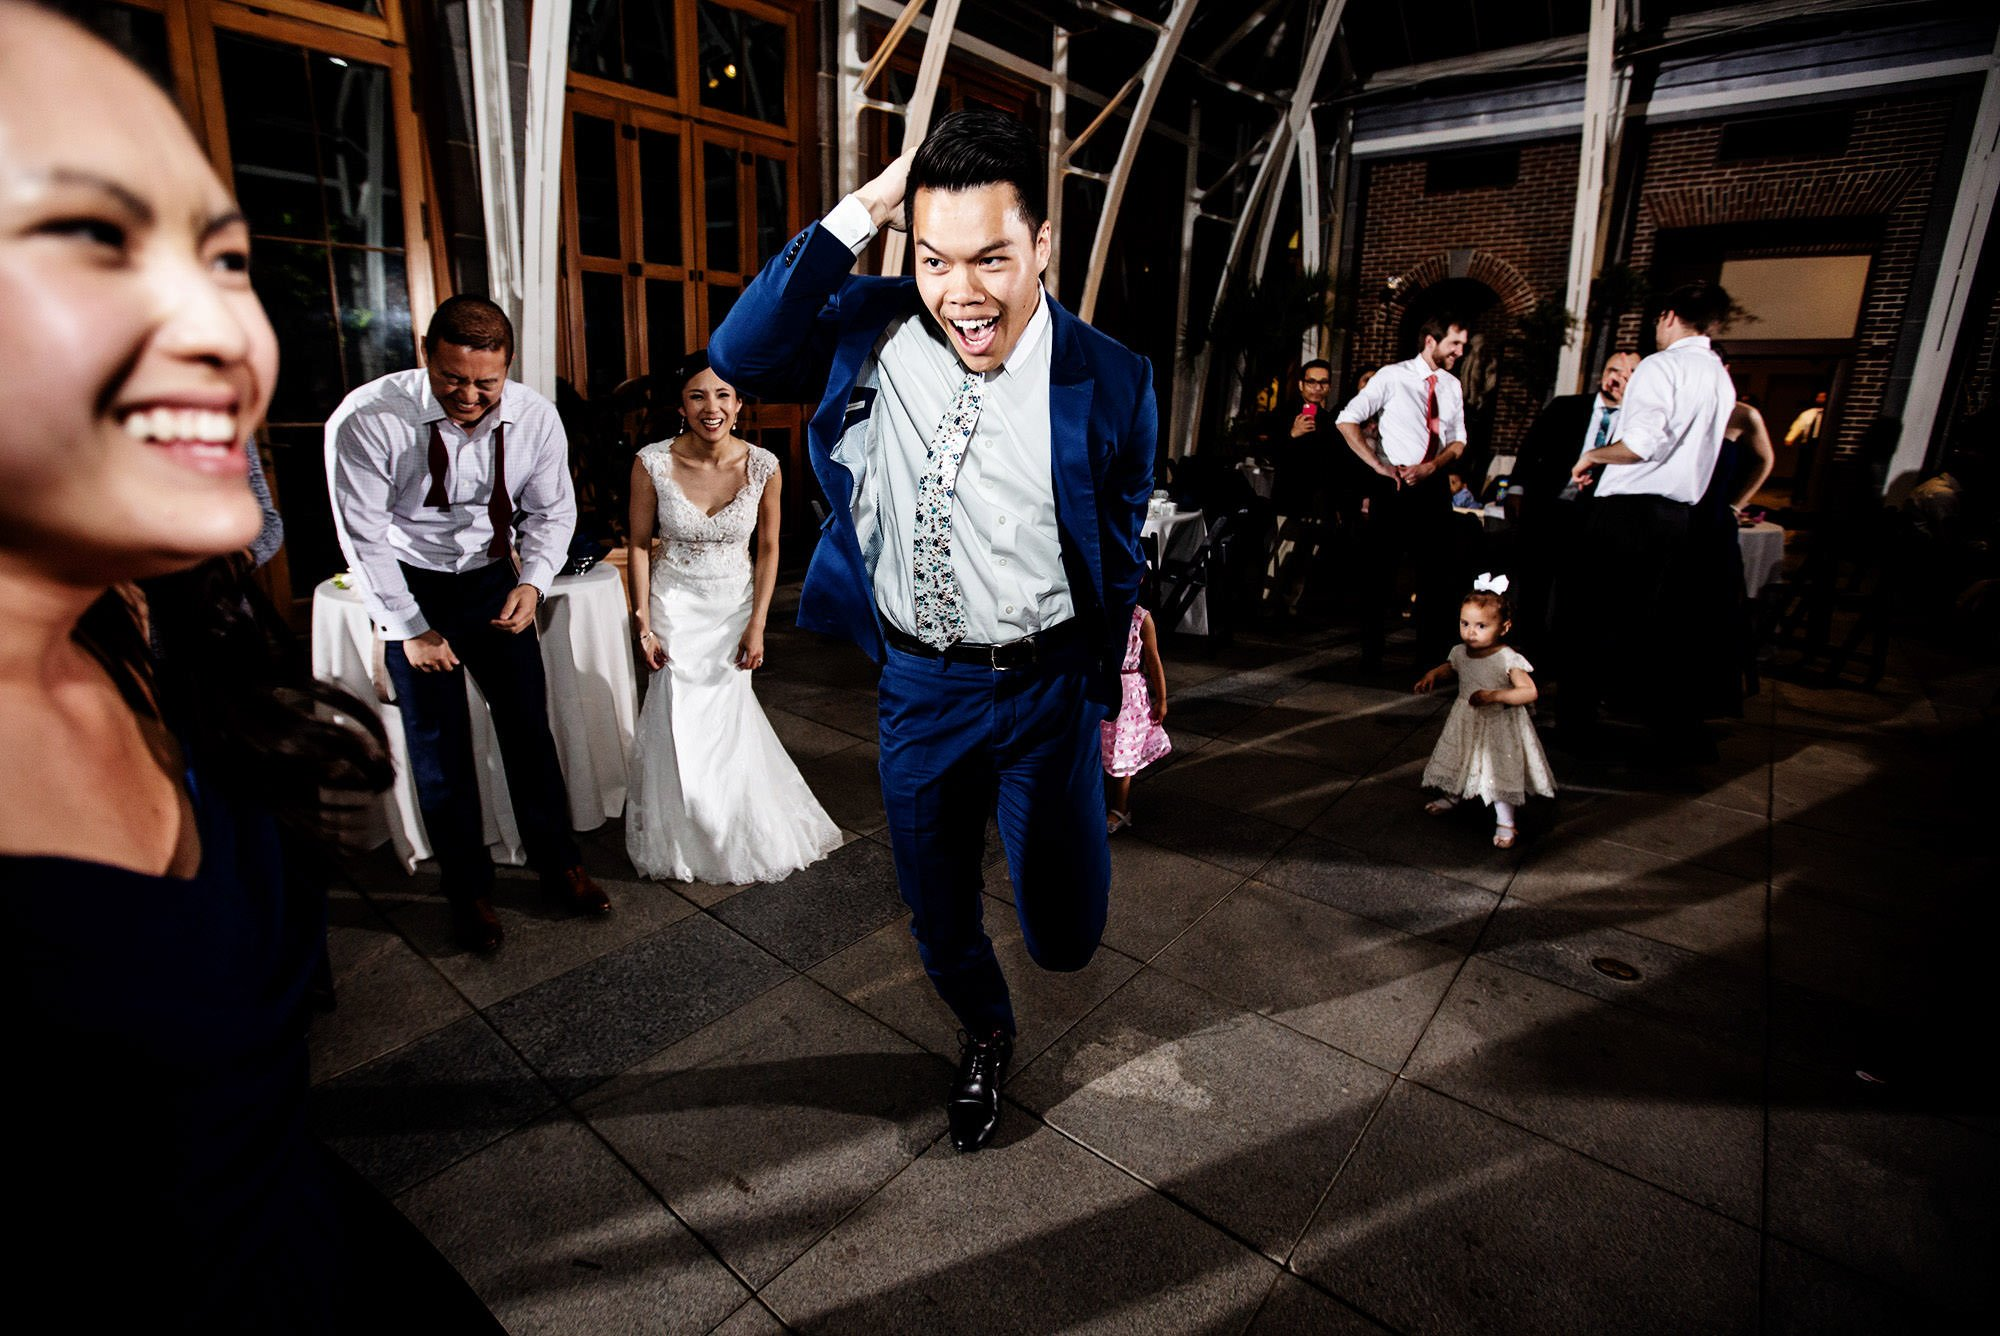 Guests dance during the Tower Hill Botanic Garden Wedding reception.